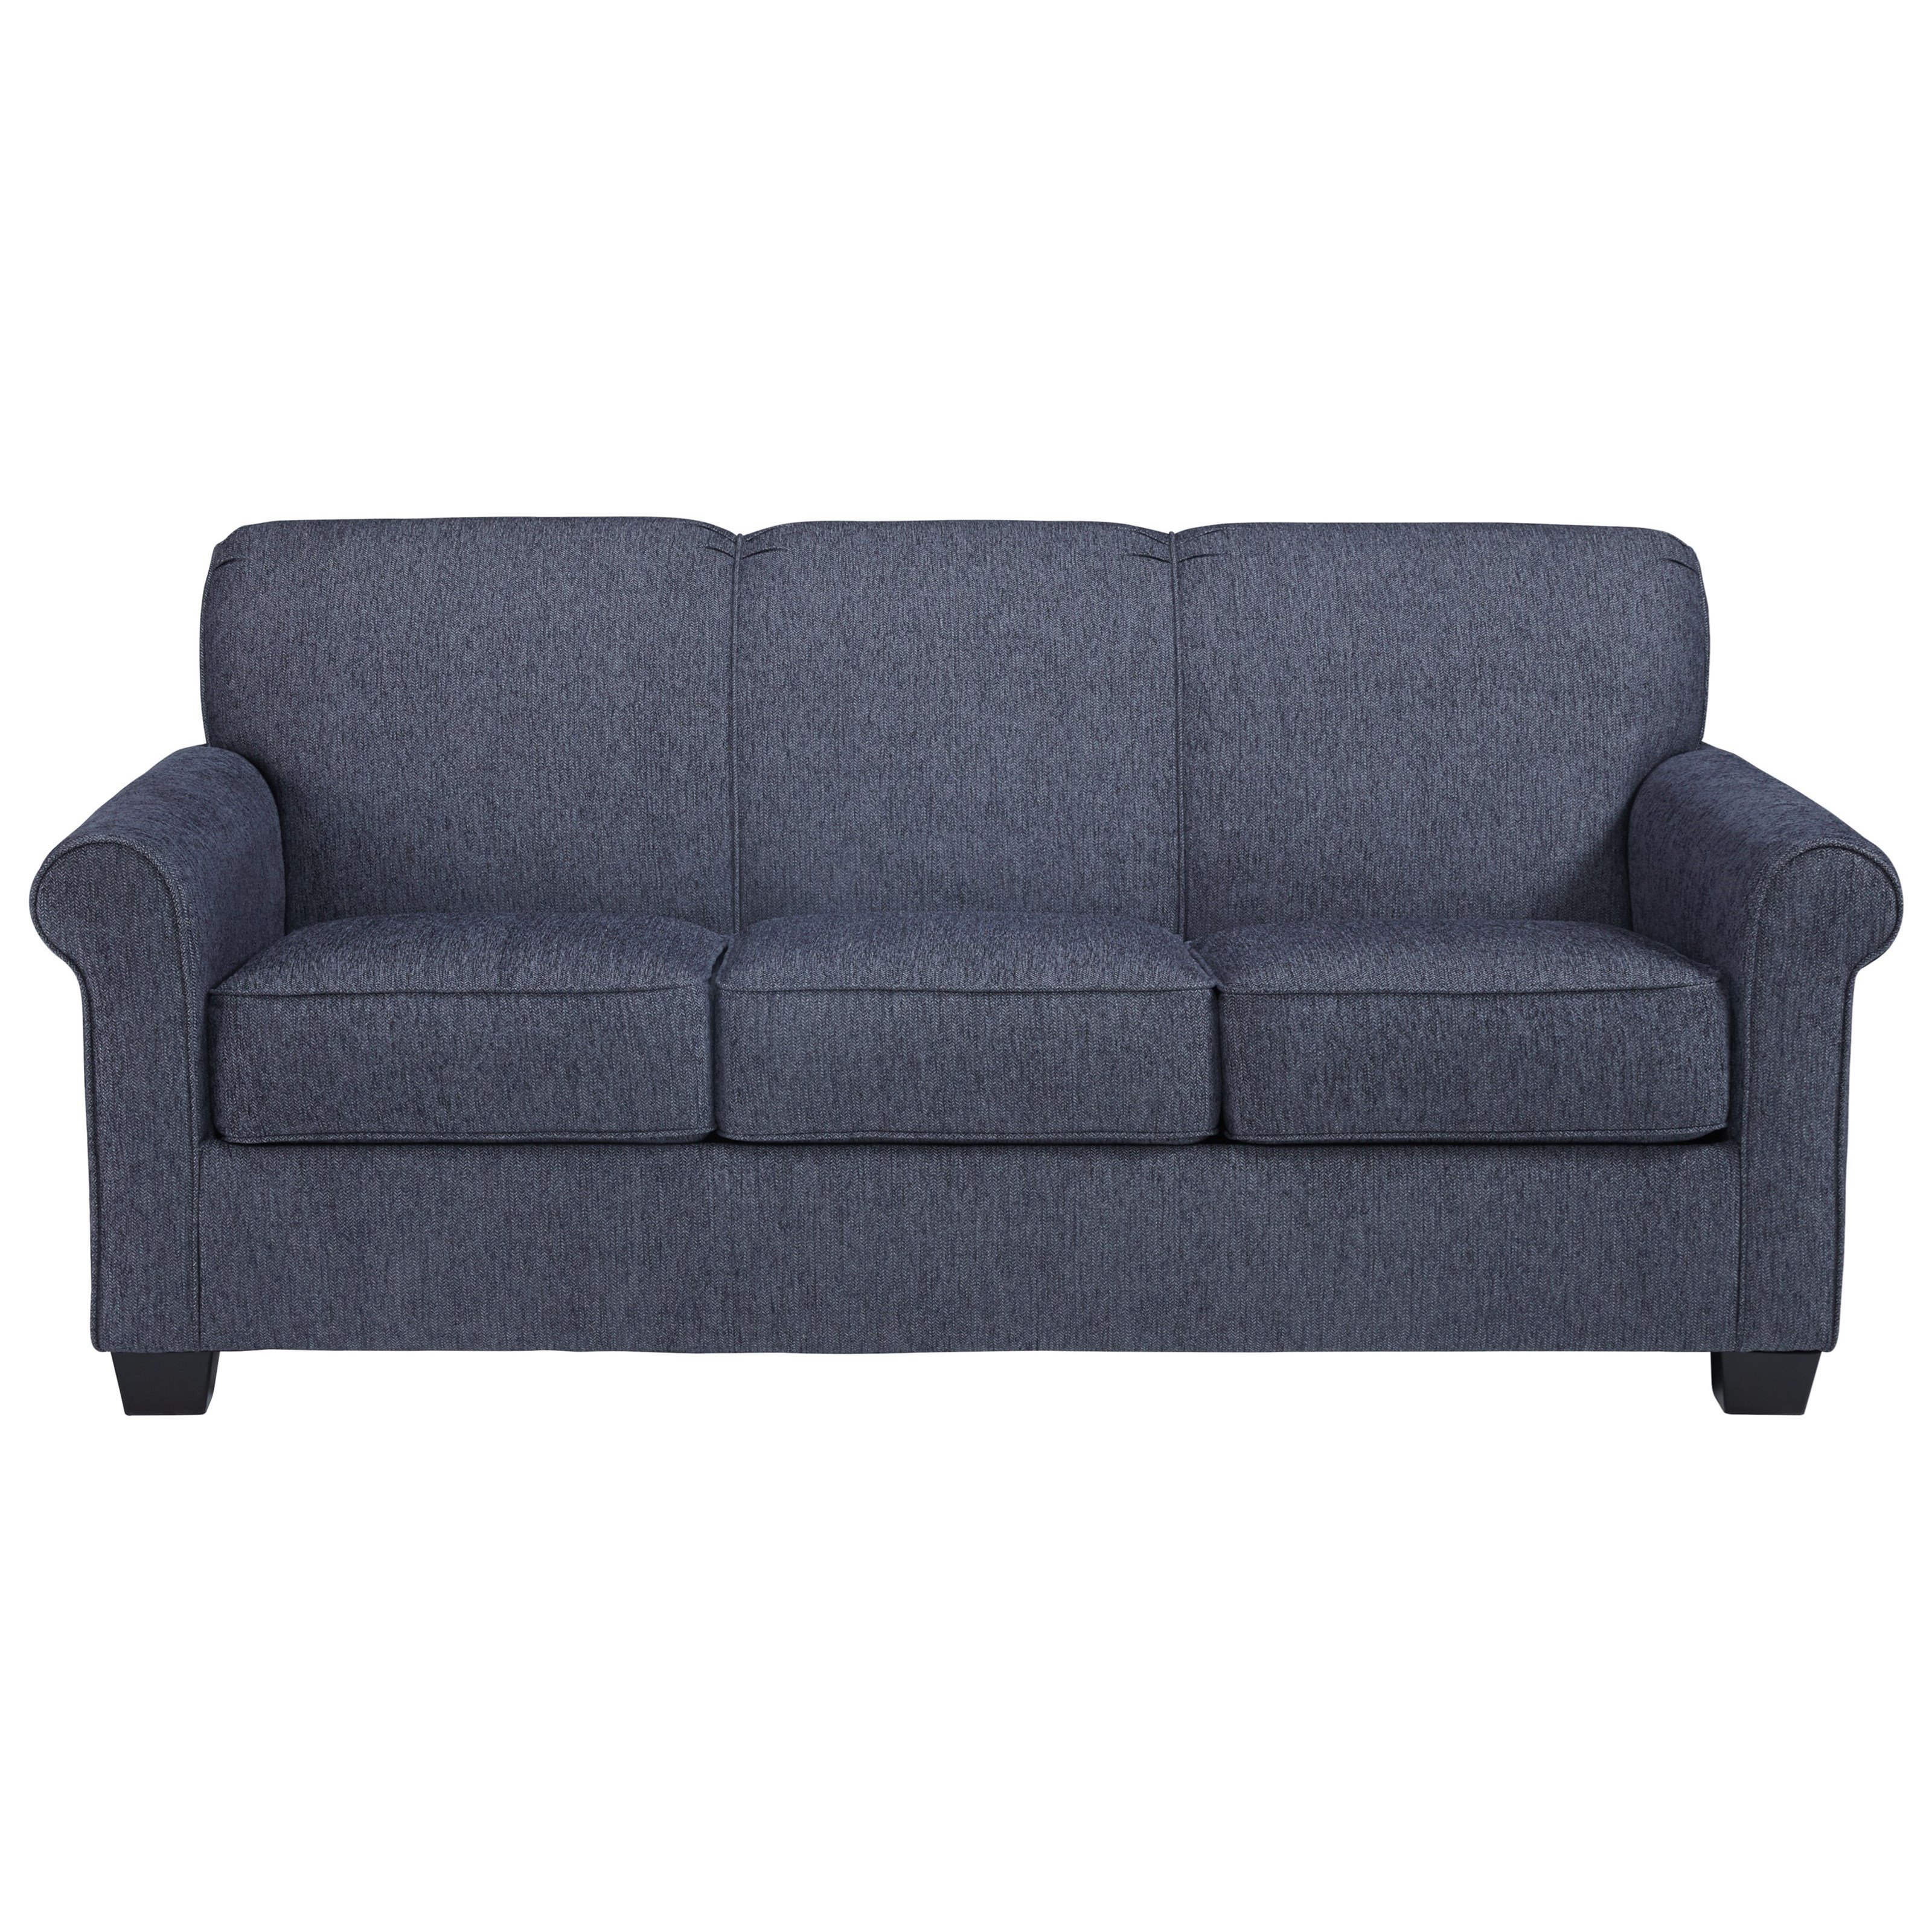 Signature Design by Ashley Cansler Full Sofa Sleeper - Item Number: 7380836